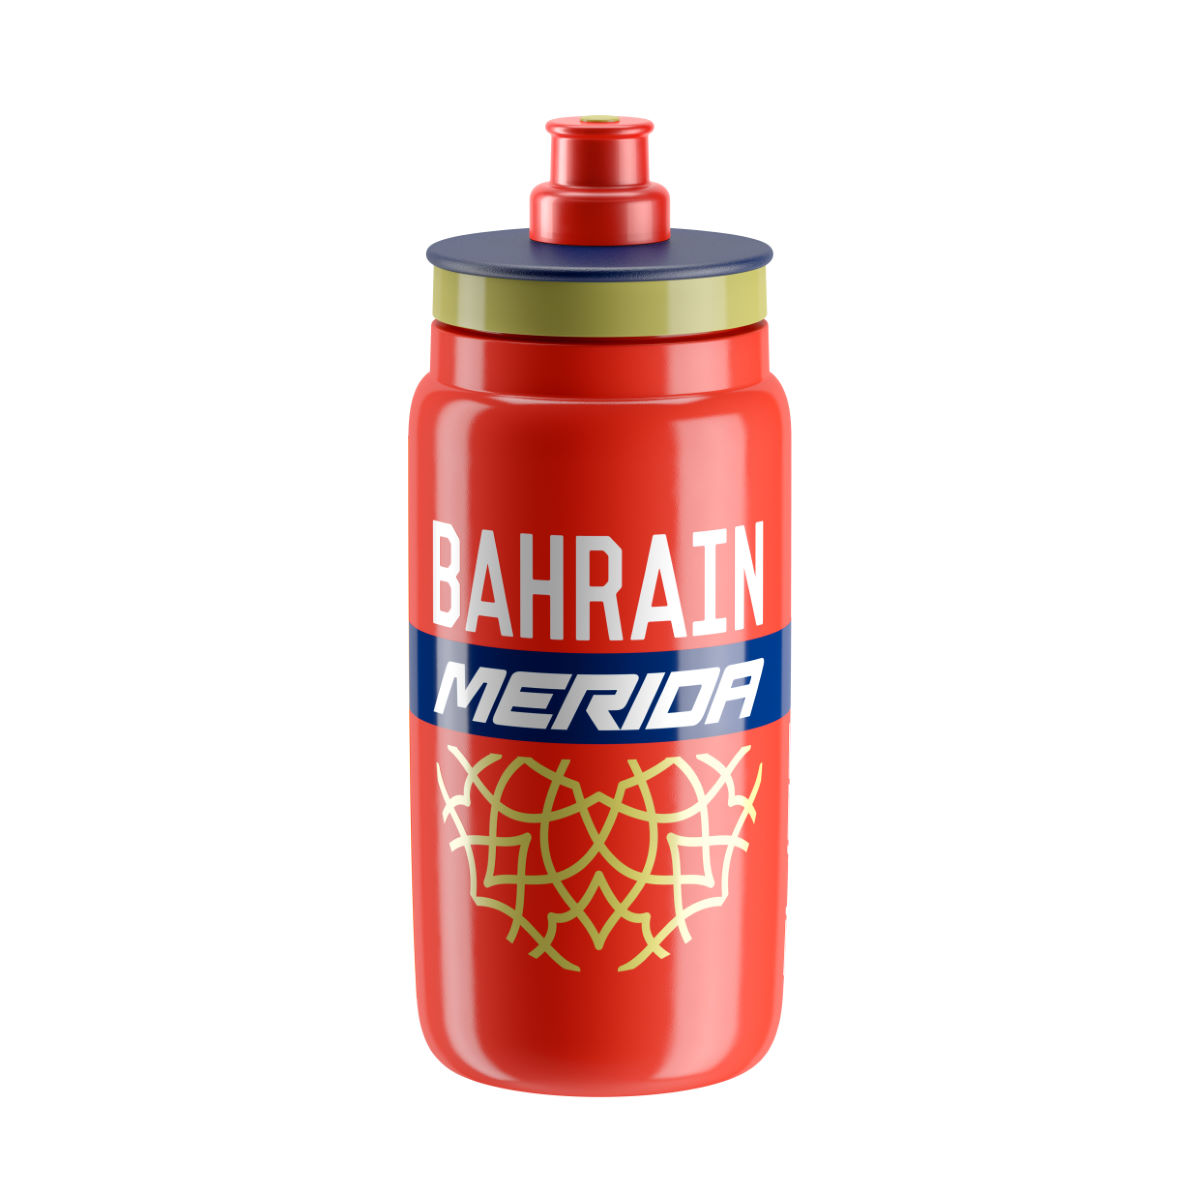 Bidon Elite Fly Team Bahrain Merida (2017) - One Size Red/blue/gold Bidons